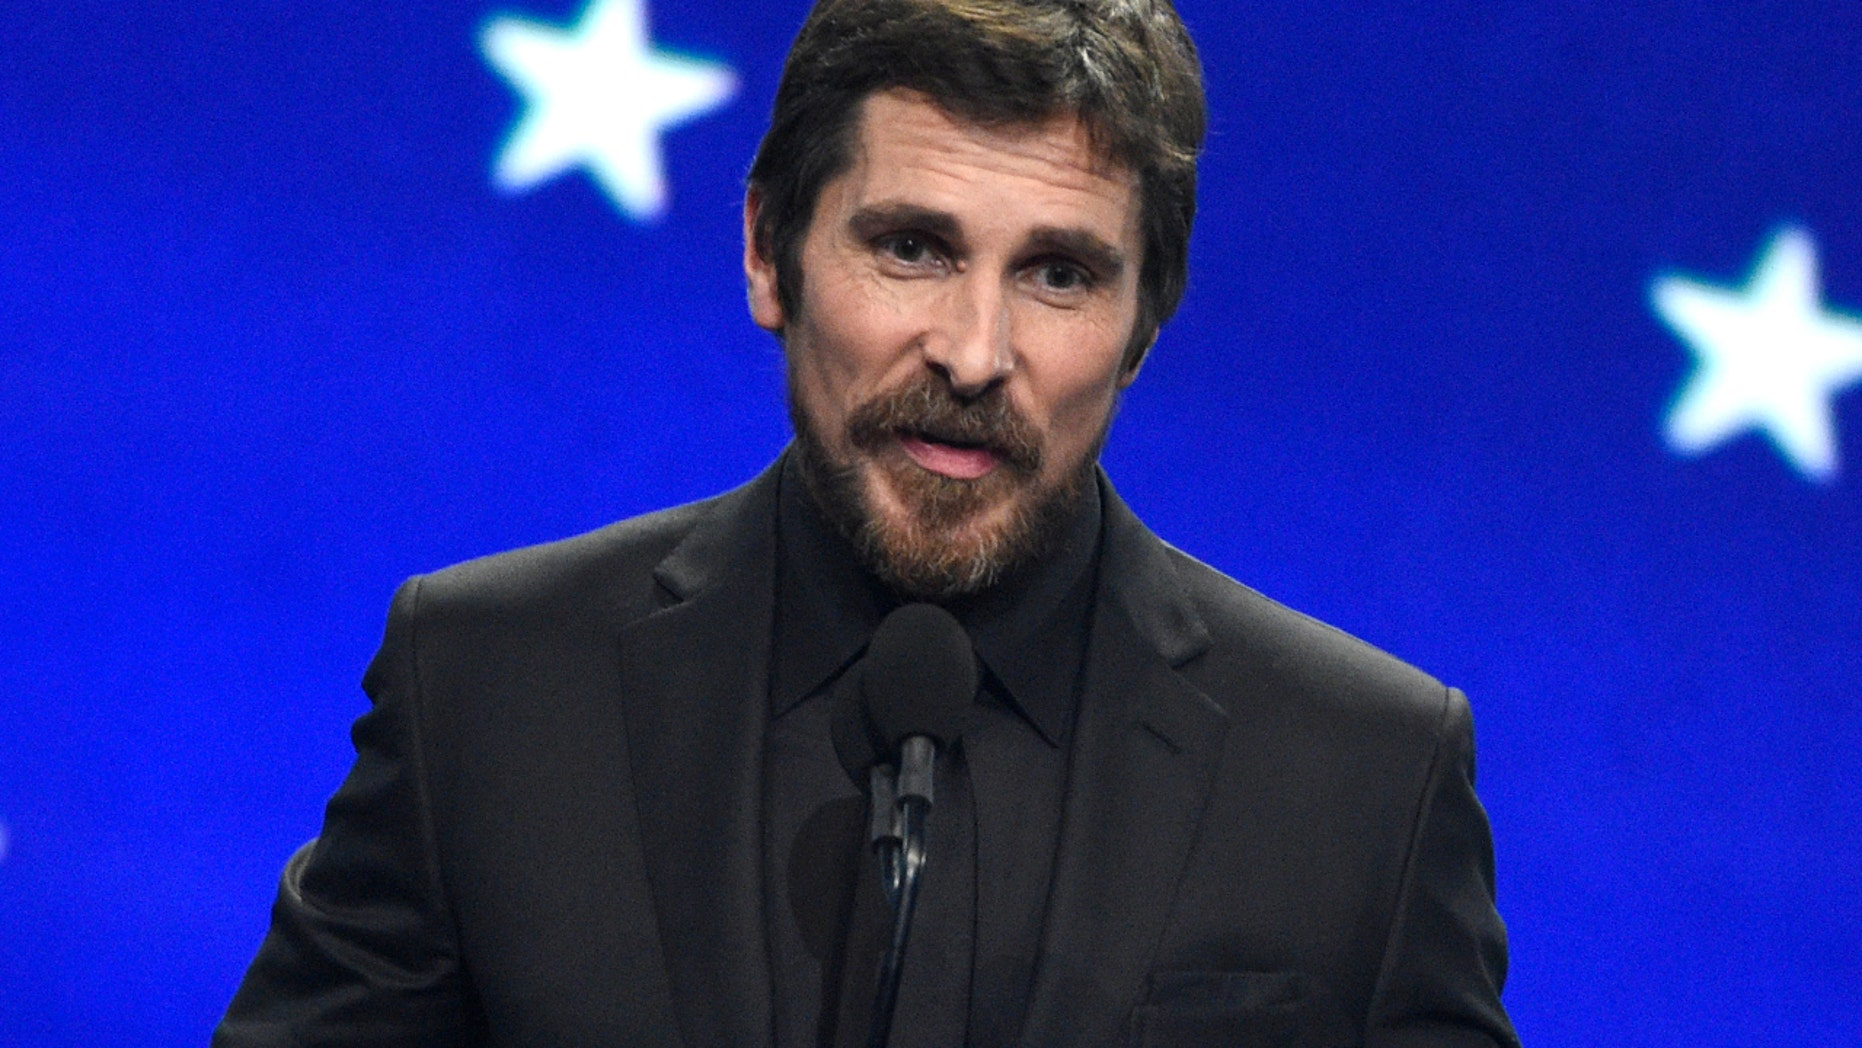 """Christian Bale accepts the award for best actor for """"Vice"""" at the 24th annual Critics' Choice Awards on Sunday, Jan. 13, 2019, at the Barker Hangar in Santa Monica, Calif."""